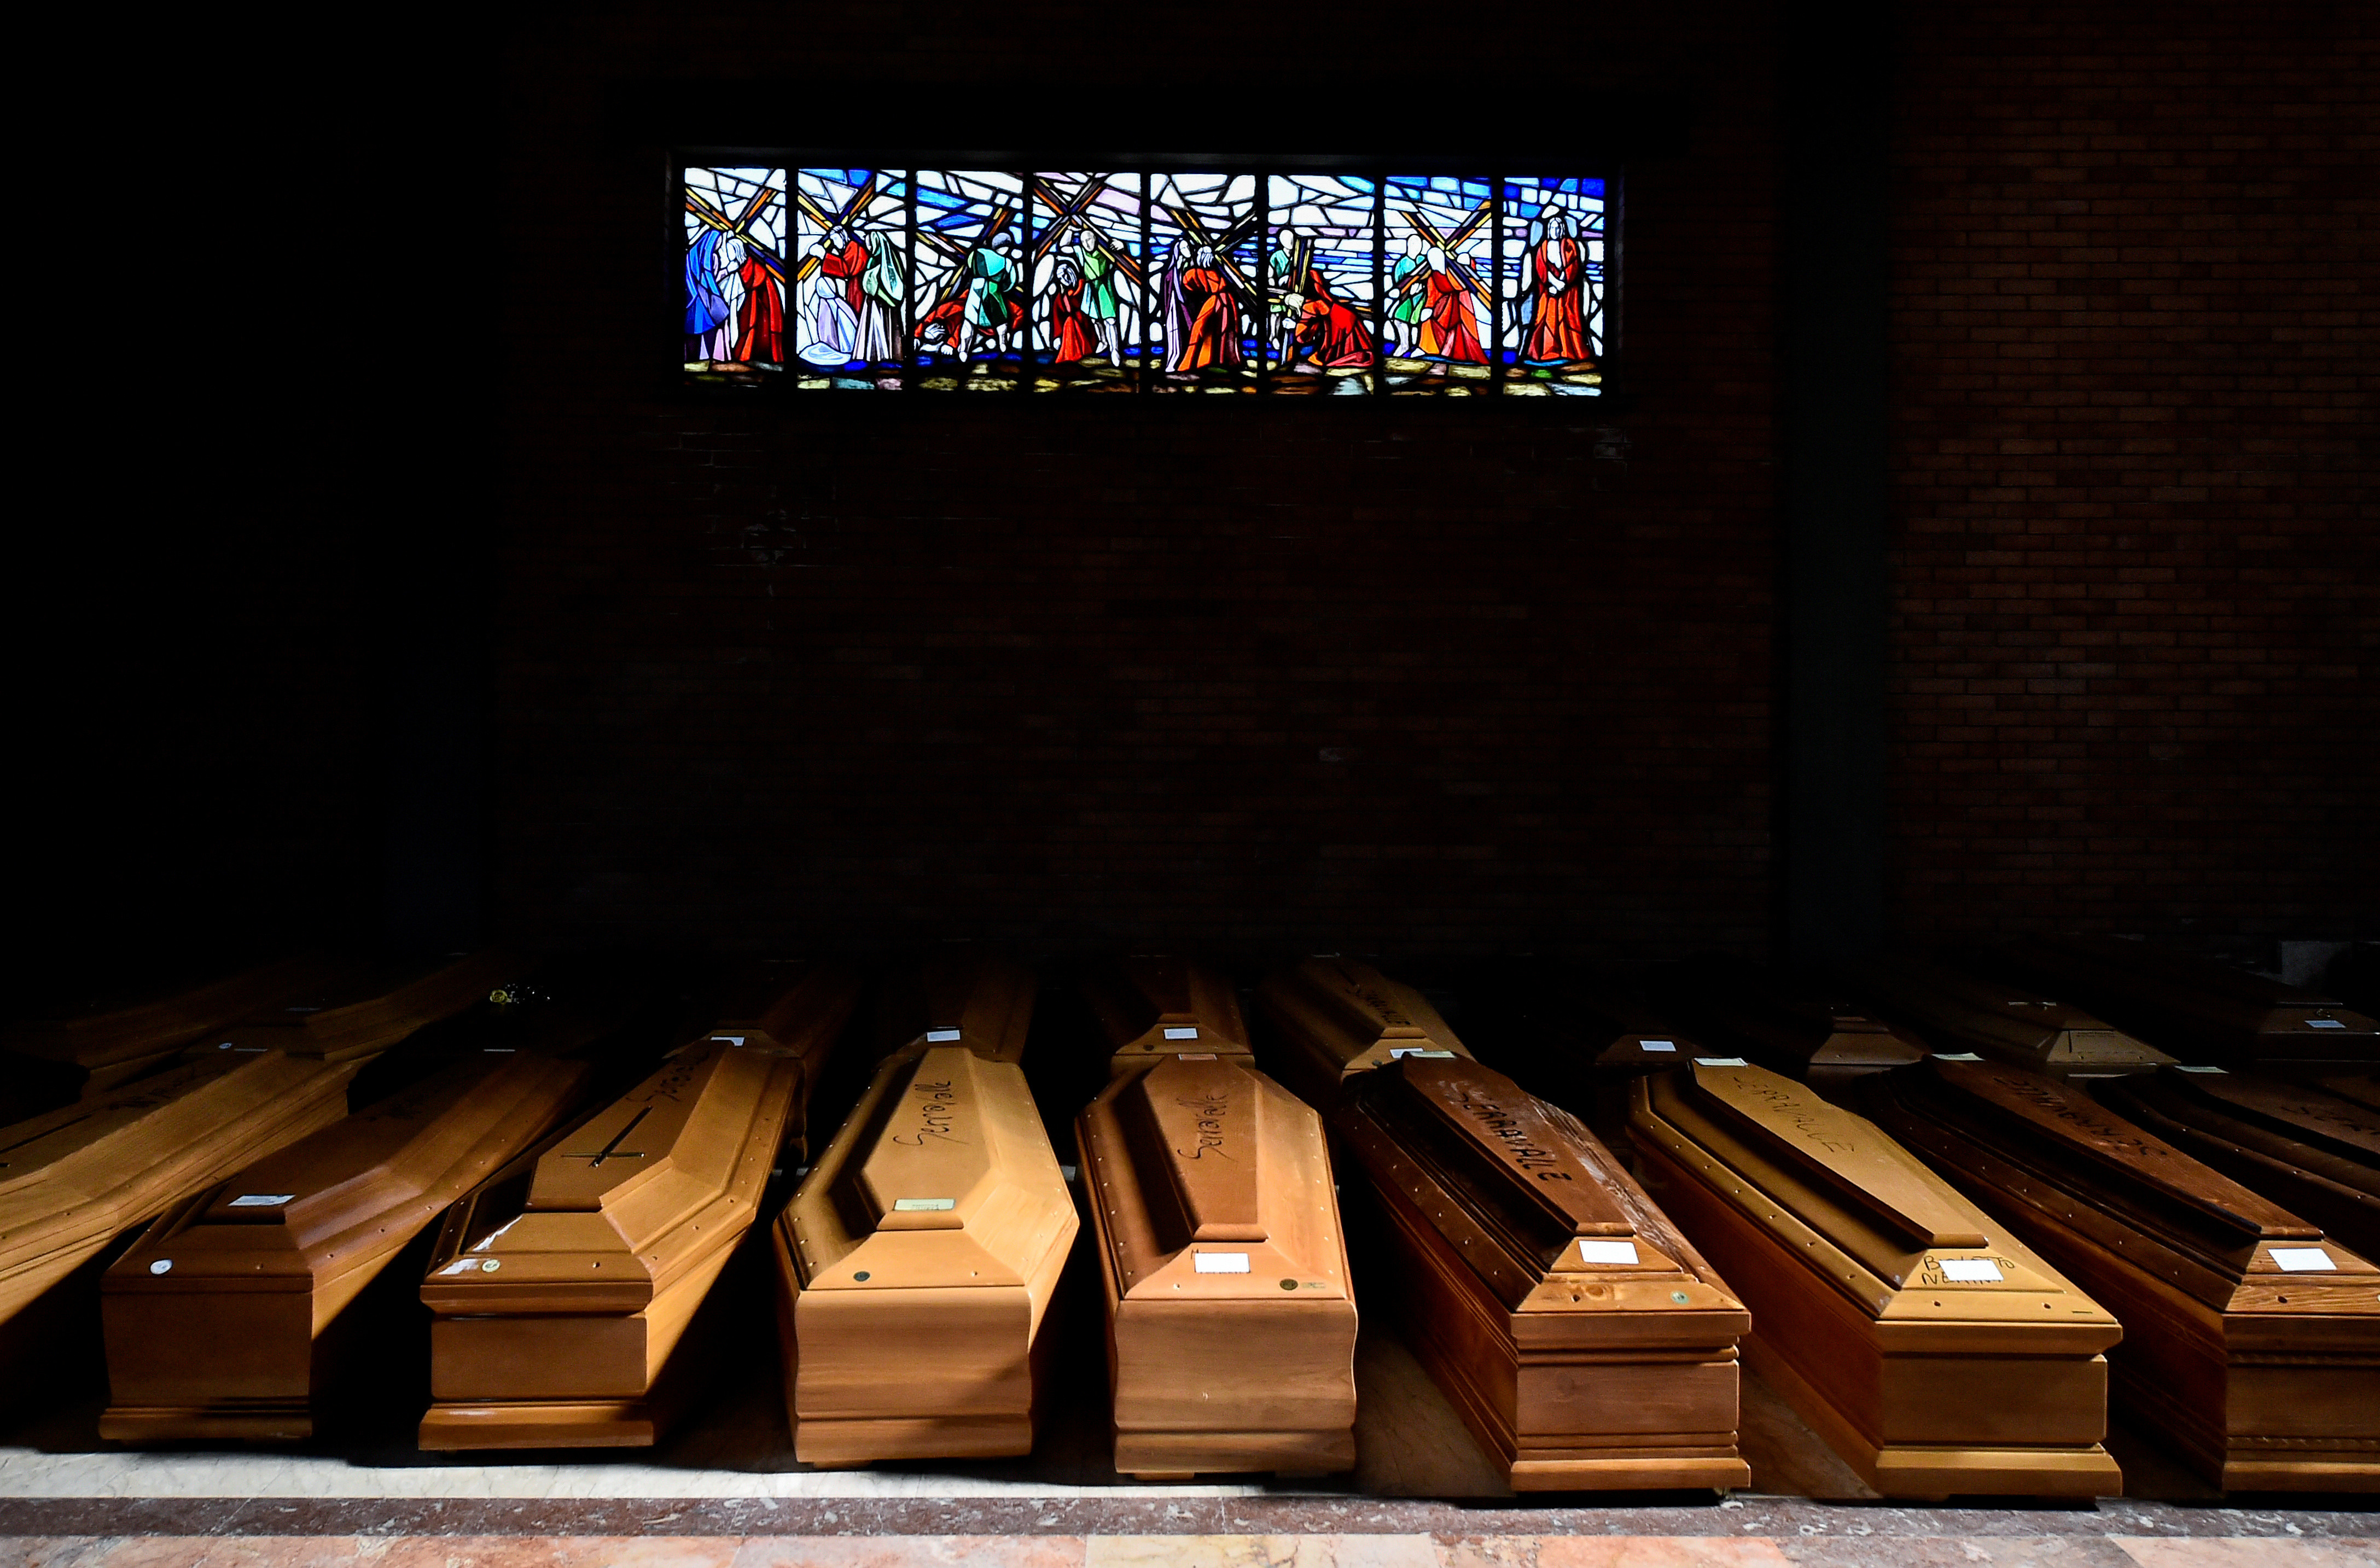 Coffins of people who have died from coronavirus disease (COVID-19) are seen in the church of the Serravalle Scrivia cemetery, which like many places in northern Italy is struggling to cope with the number of deaths from the virus that is growing every day, in Alessandria, Italy, March 23, 2020. REUTERS/Flavio Lo Scalzo     TPX IMAGES OF THE DAY - RC2RPF9LLKDB